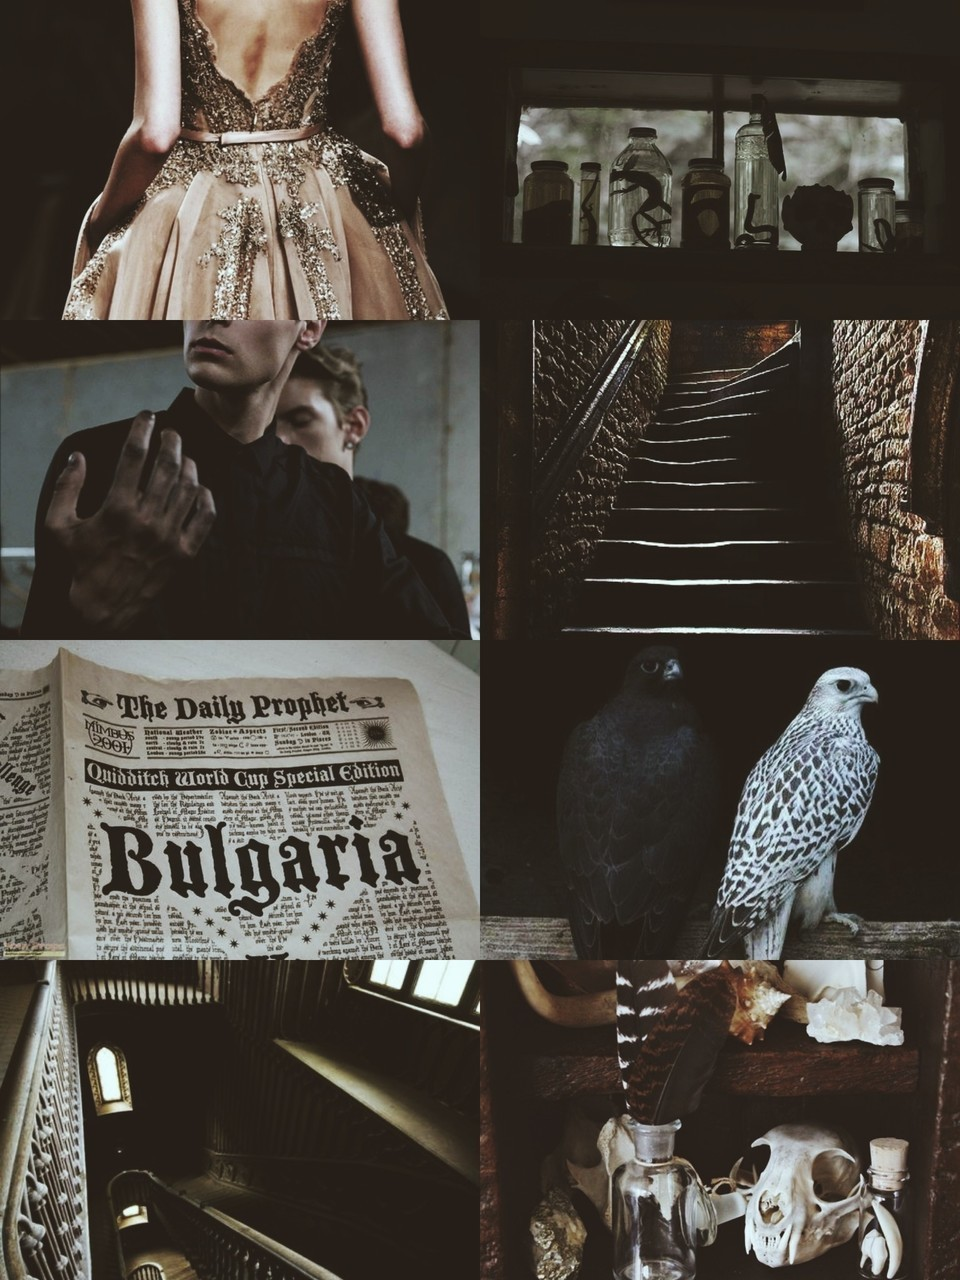 Durmstrang Aesthetic Hu Ffleclaw On Instagram Durmstrang institute is mentioned briefly in both the harry potter books and movies, so here are a few facts about this mysterious wizarding school. durmstrang aesthetic hu ffleclaw on